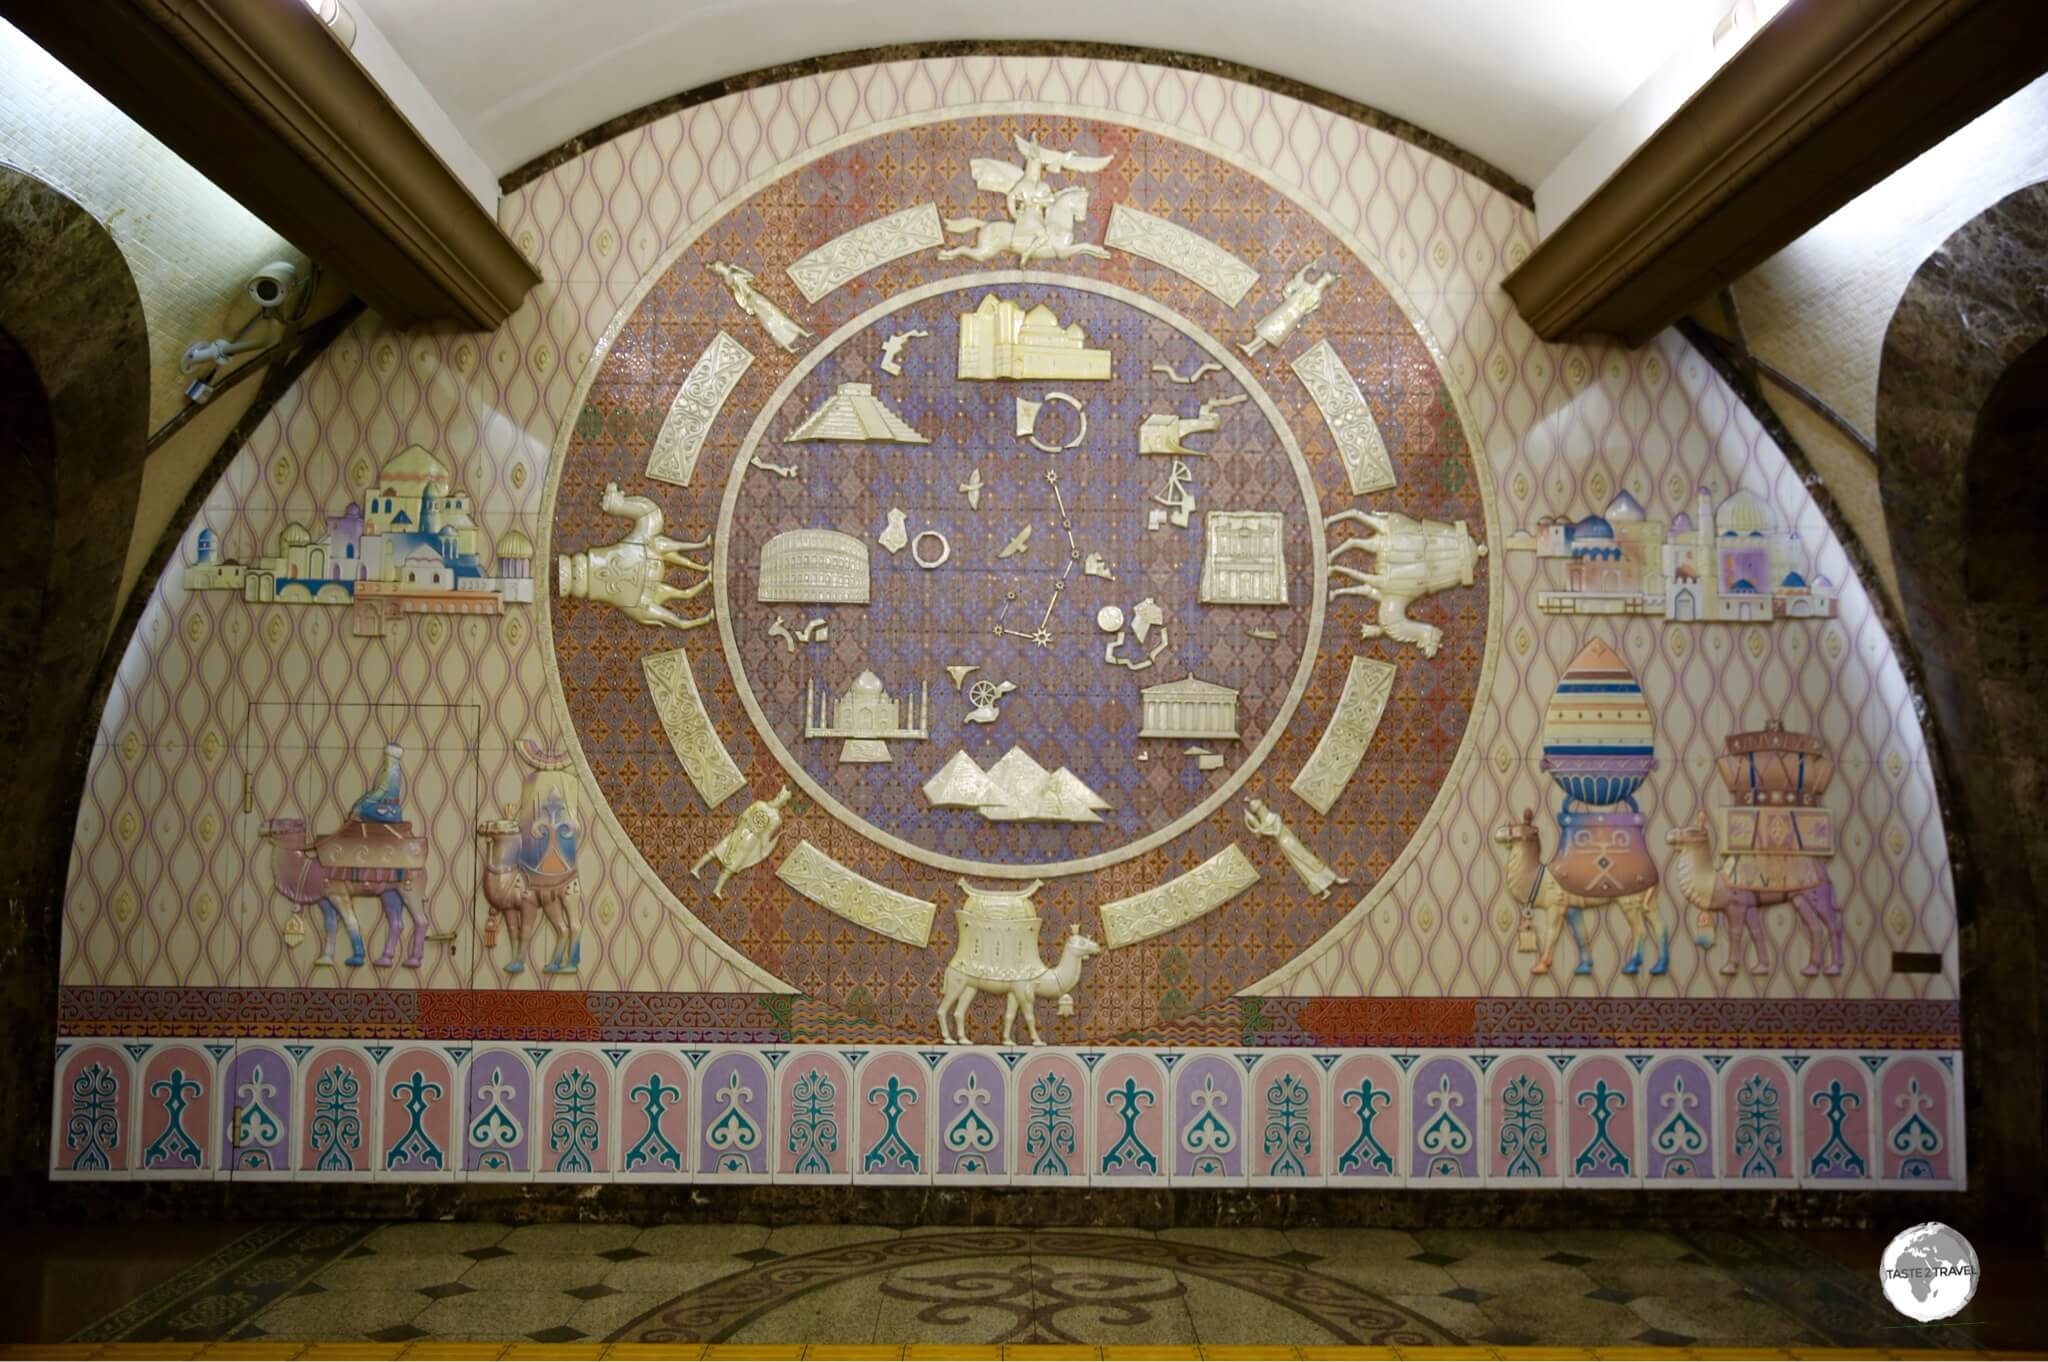 A ceramic mural depicts scenes from the Silk Road at Zhibek Zholy (Silk Road) Metro Station.